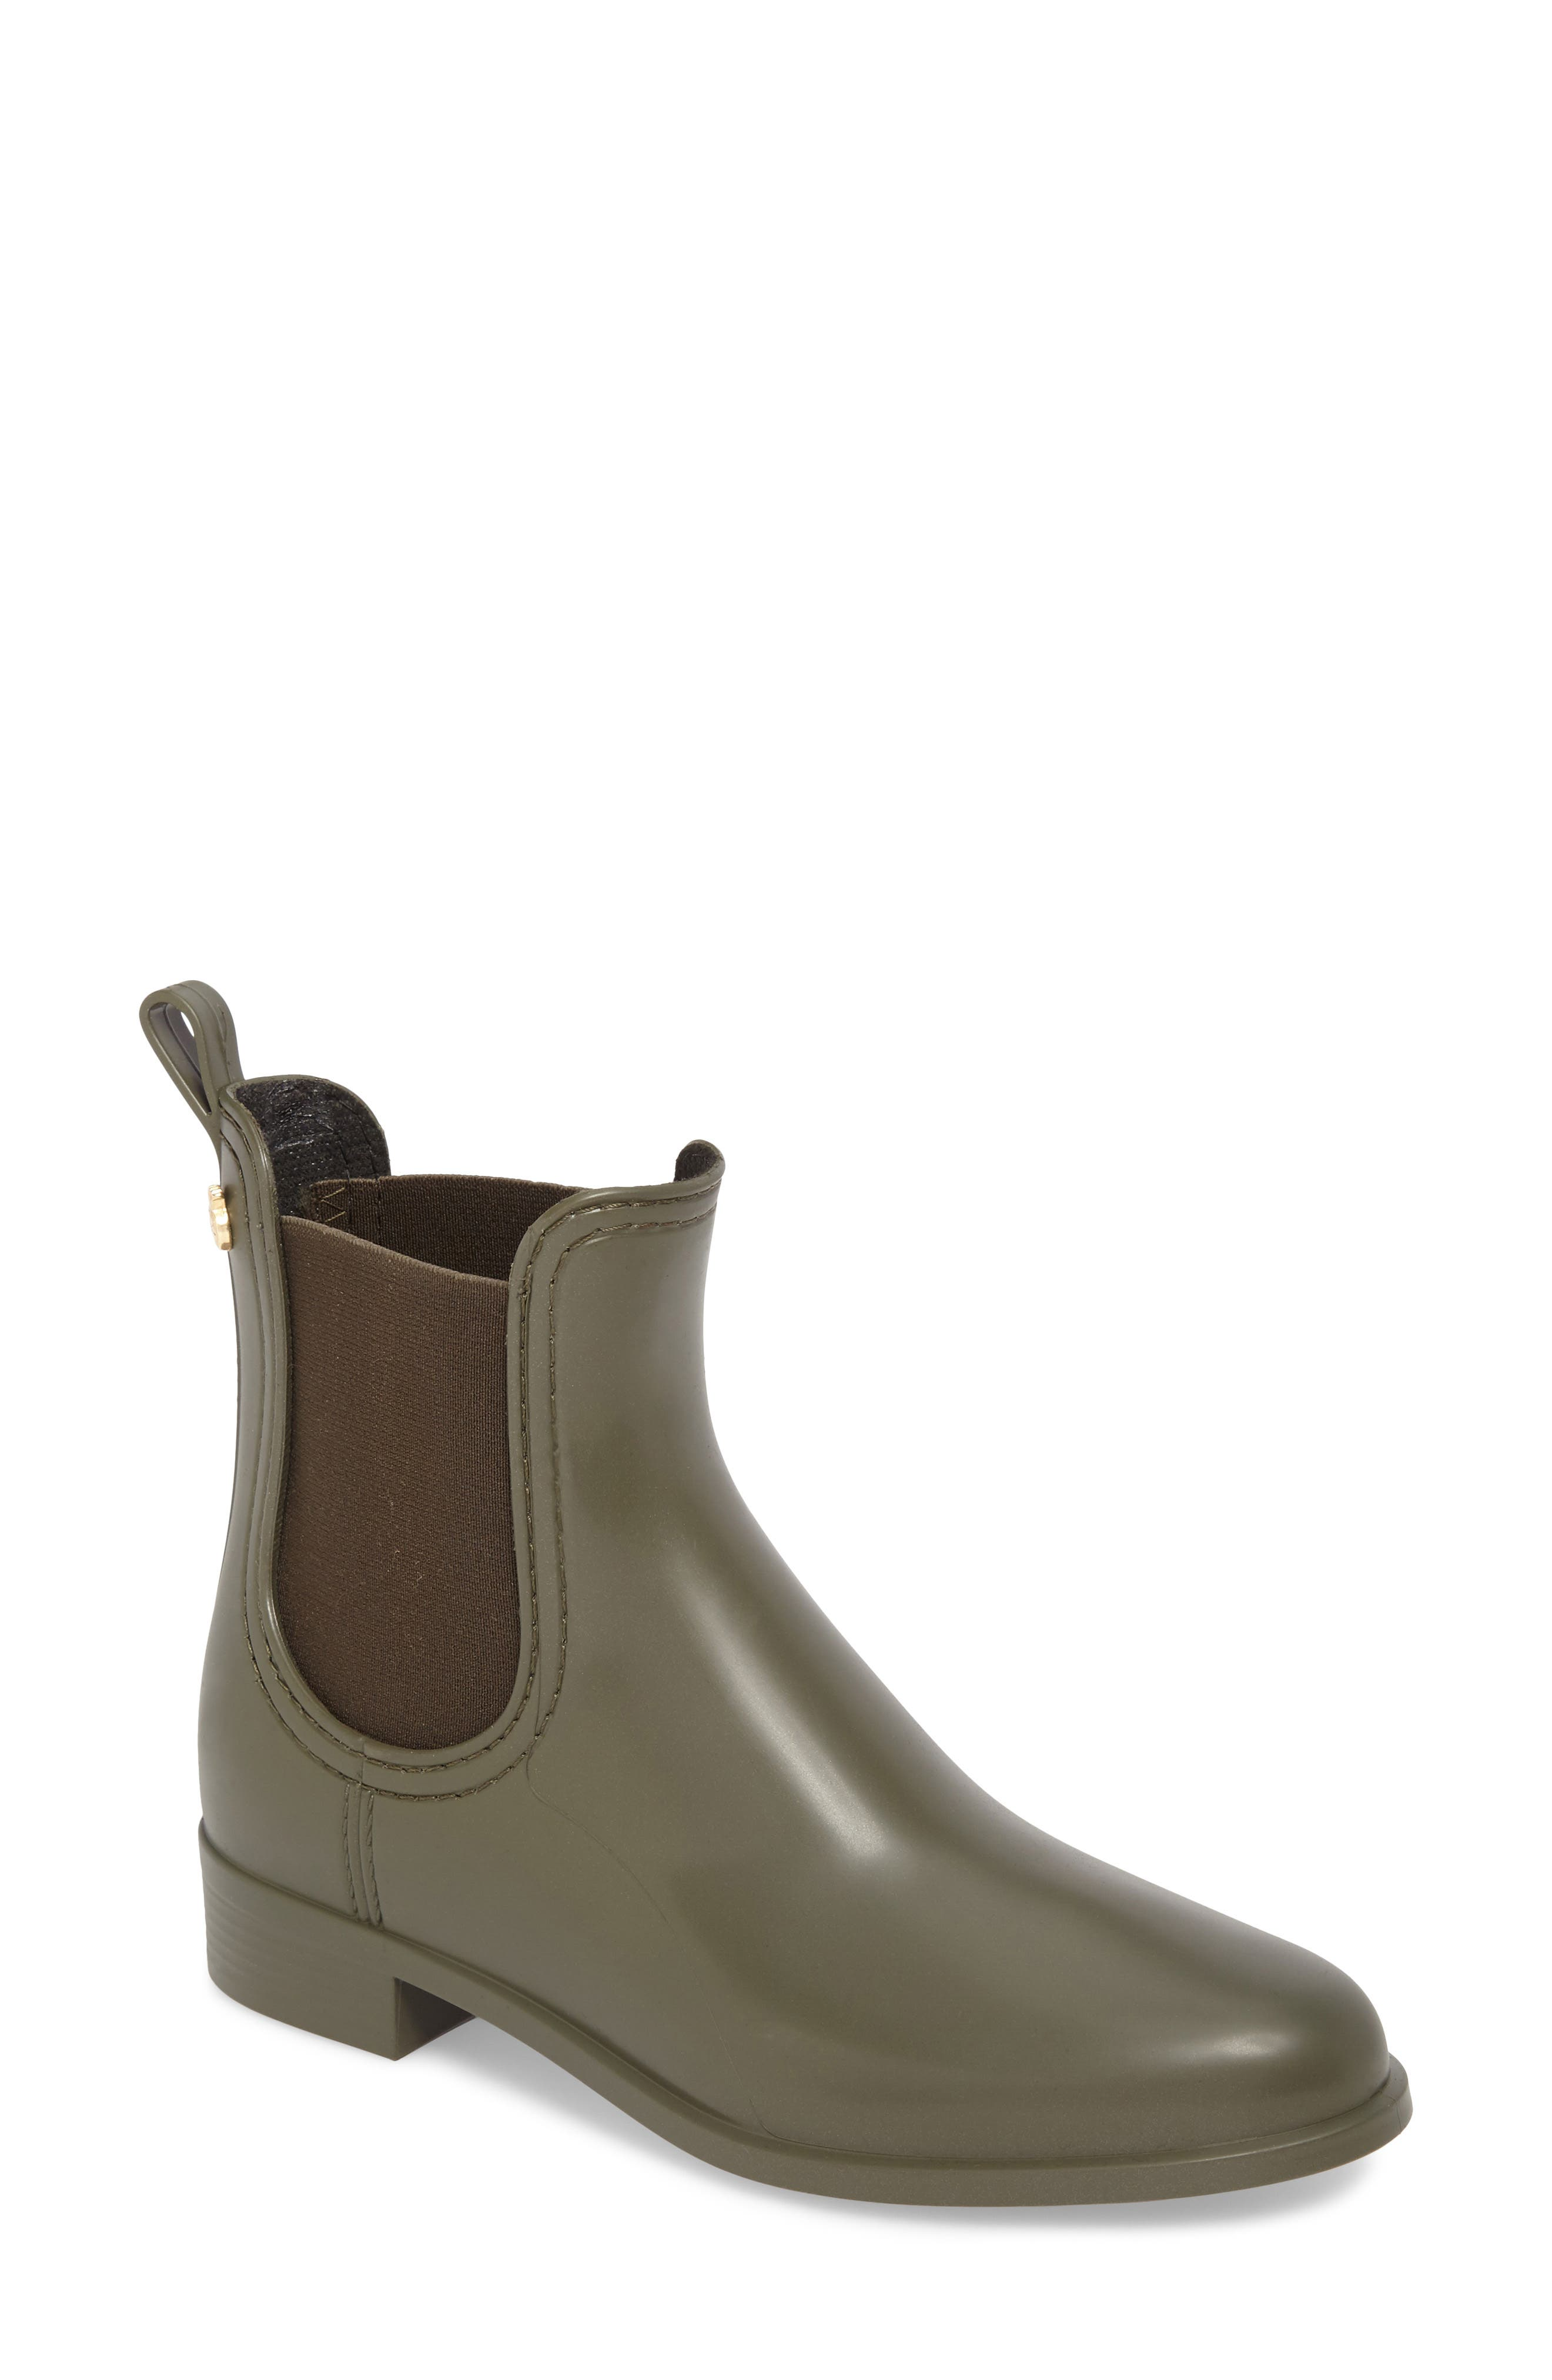 Splash Waterproof Chelsea Boot,                         Main,                         color, Metal Green Matte